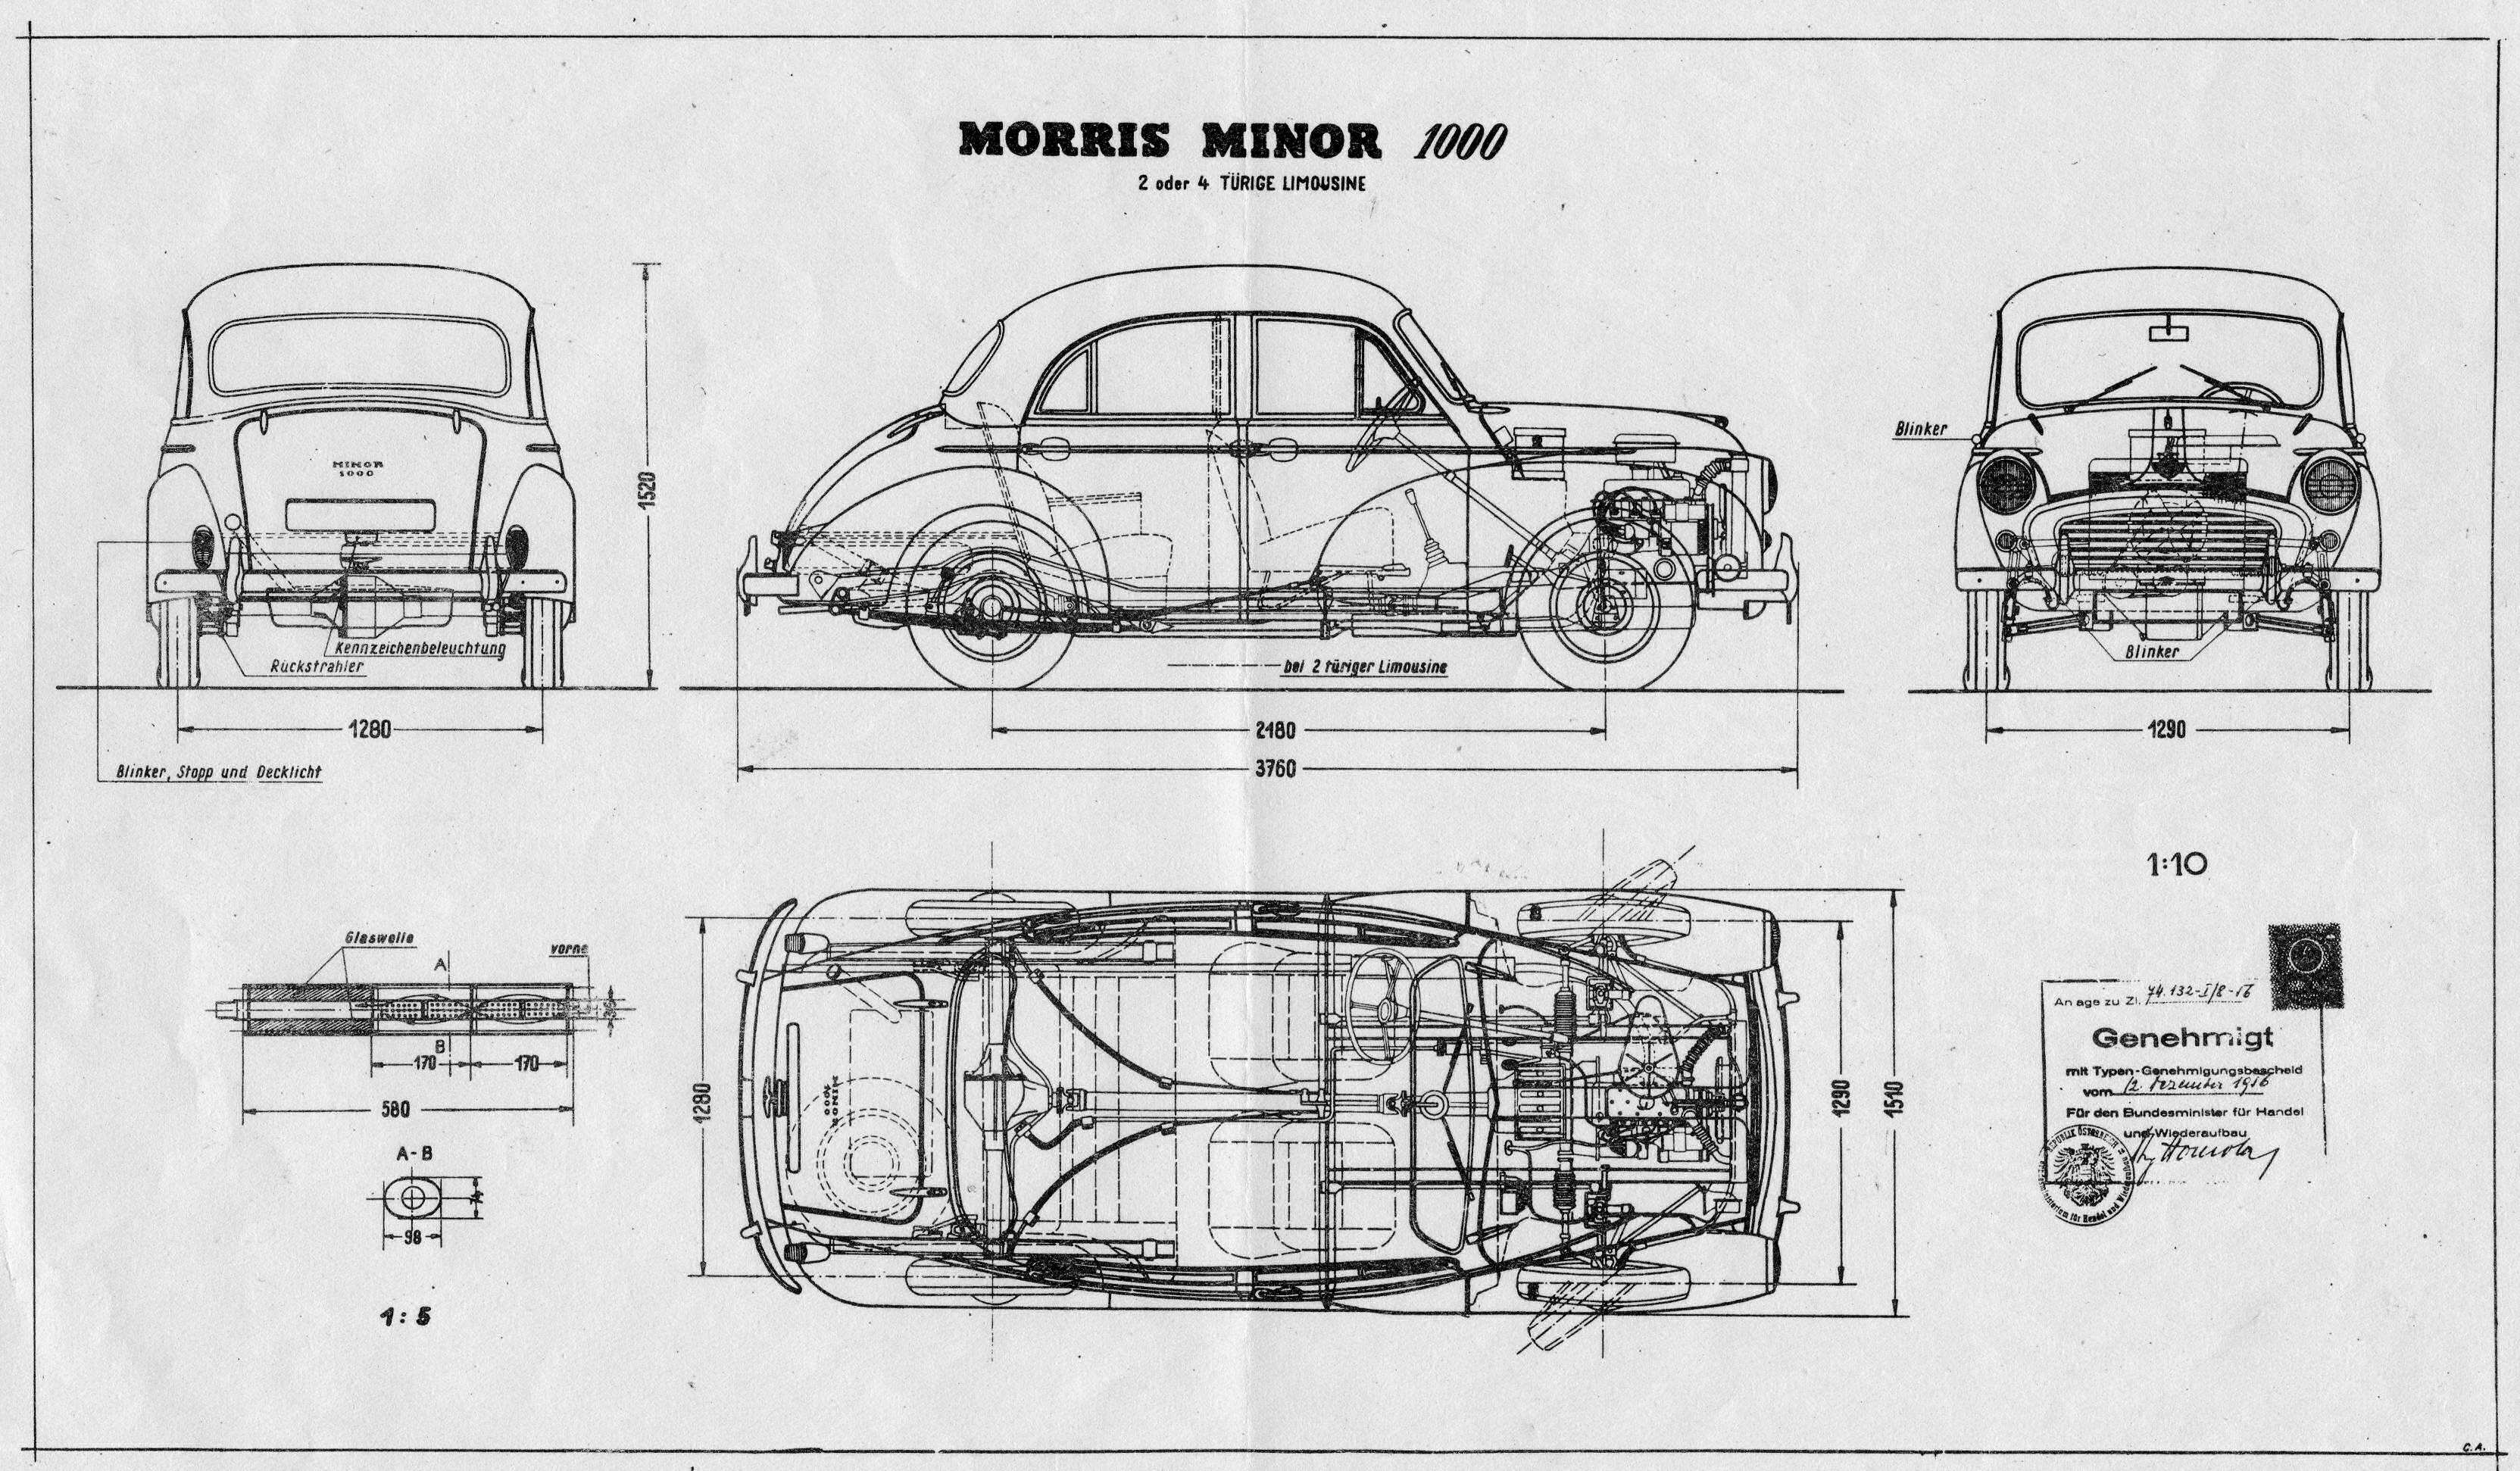 morris minor 1000 1938 blueprint